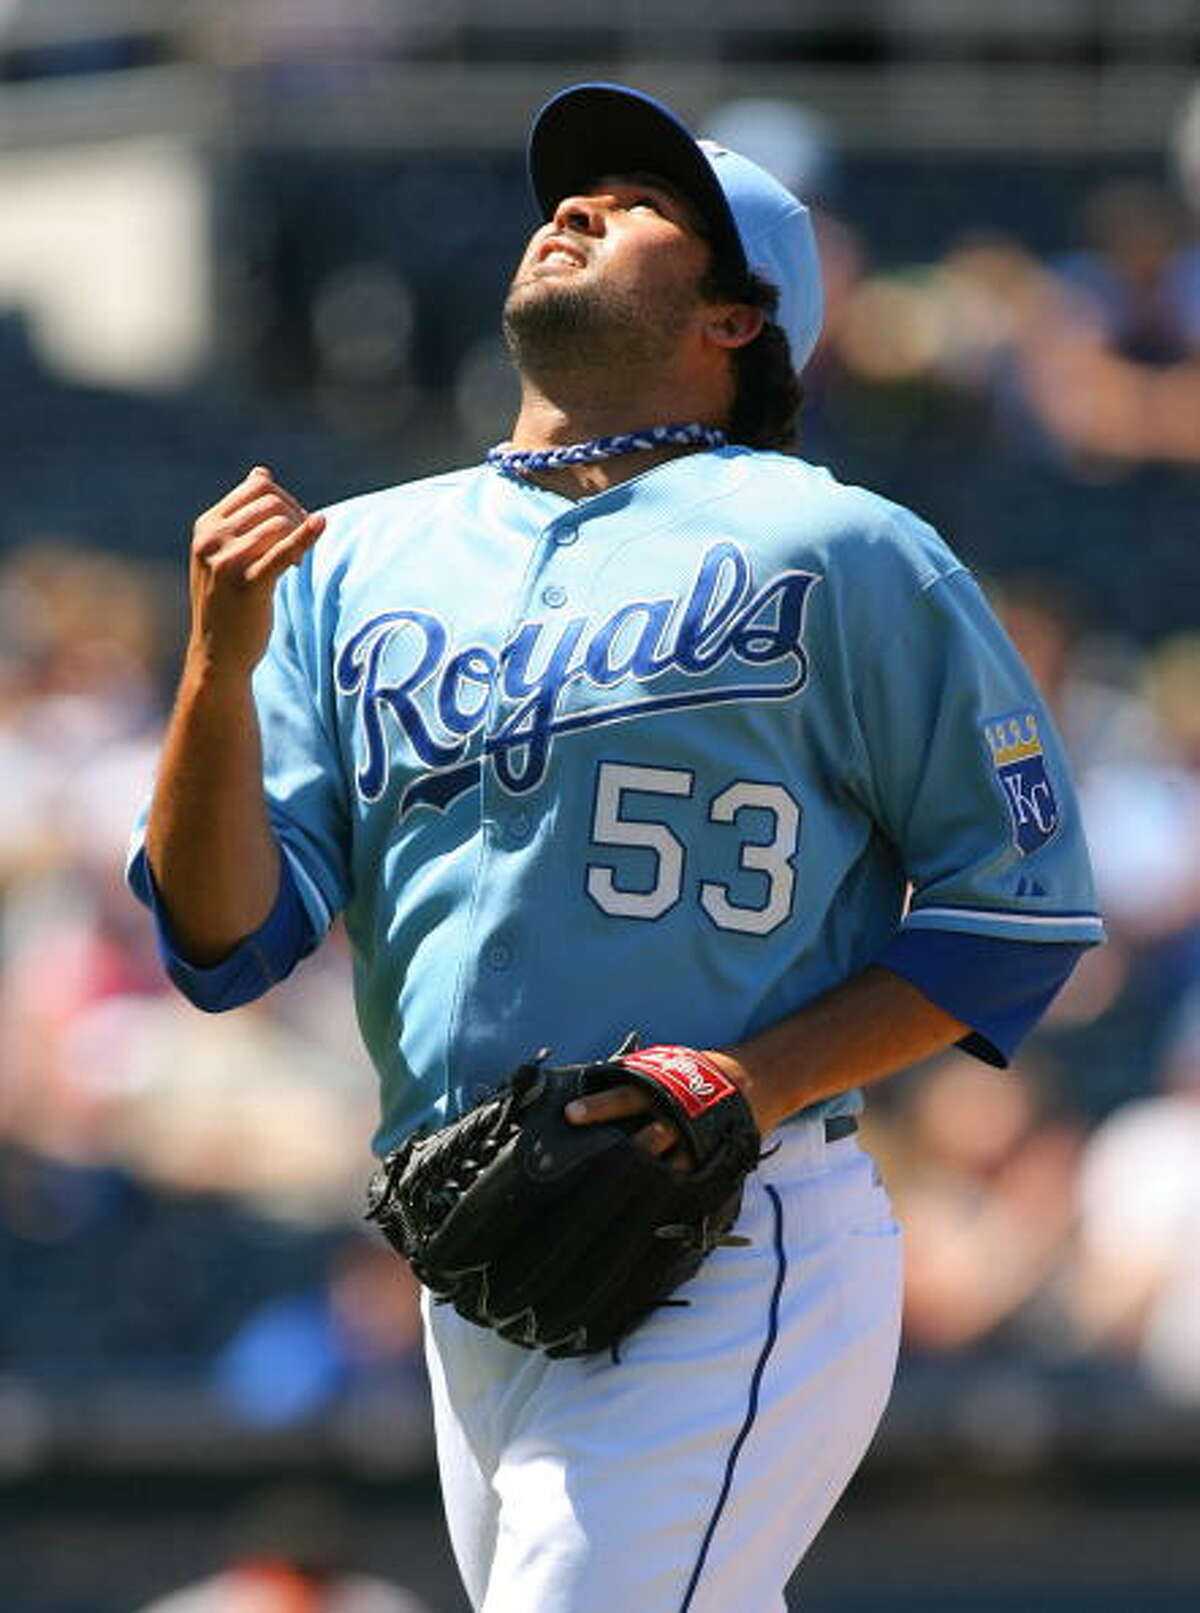 Texeira was claimed off waivers by the Kansas City Royals later that year. Here, he walks off the field during a game against the Baltimore Orioles on August 1, 2010, at Kauffman Stadium in Kansas City, Mo. Texeira last appeared in the Major Leagues in 2011, with the Royals. (Photo by Tim Umphrey/Getty Images)